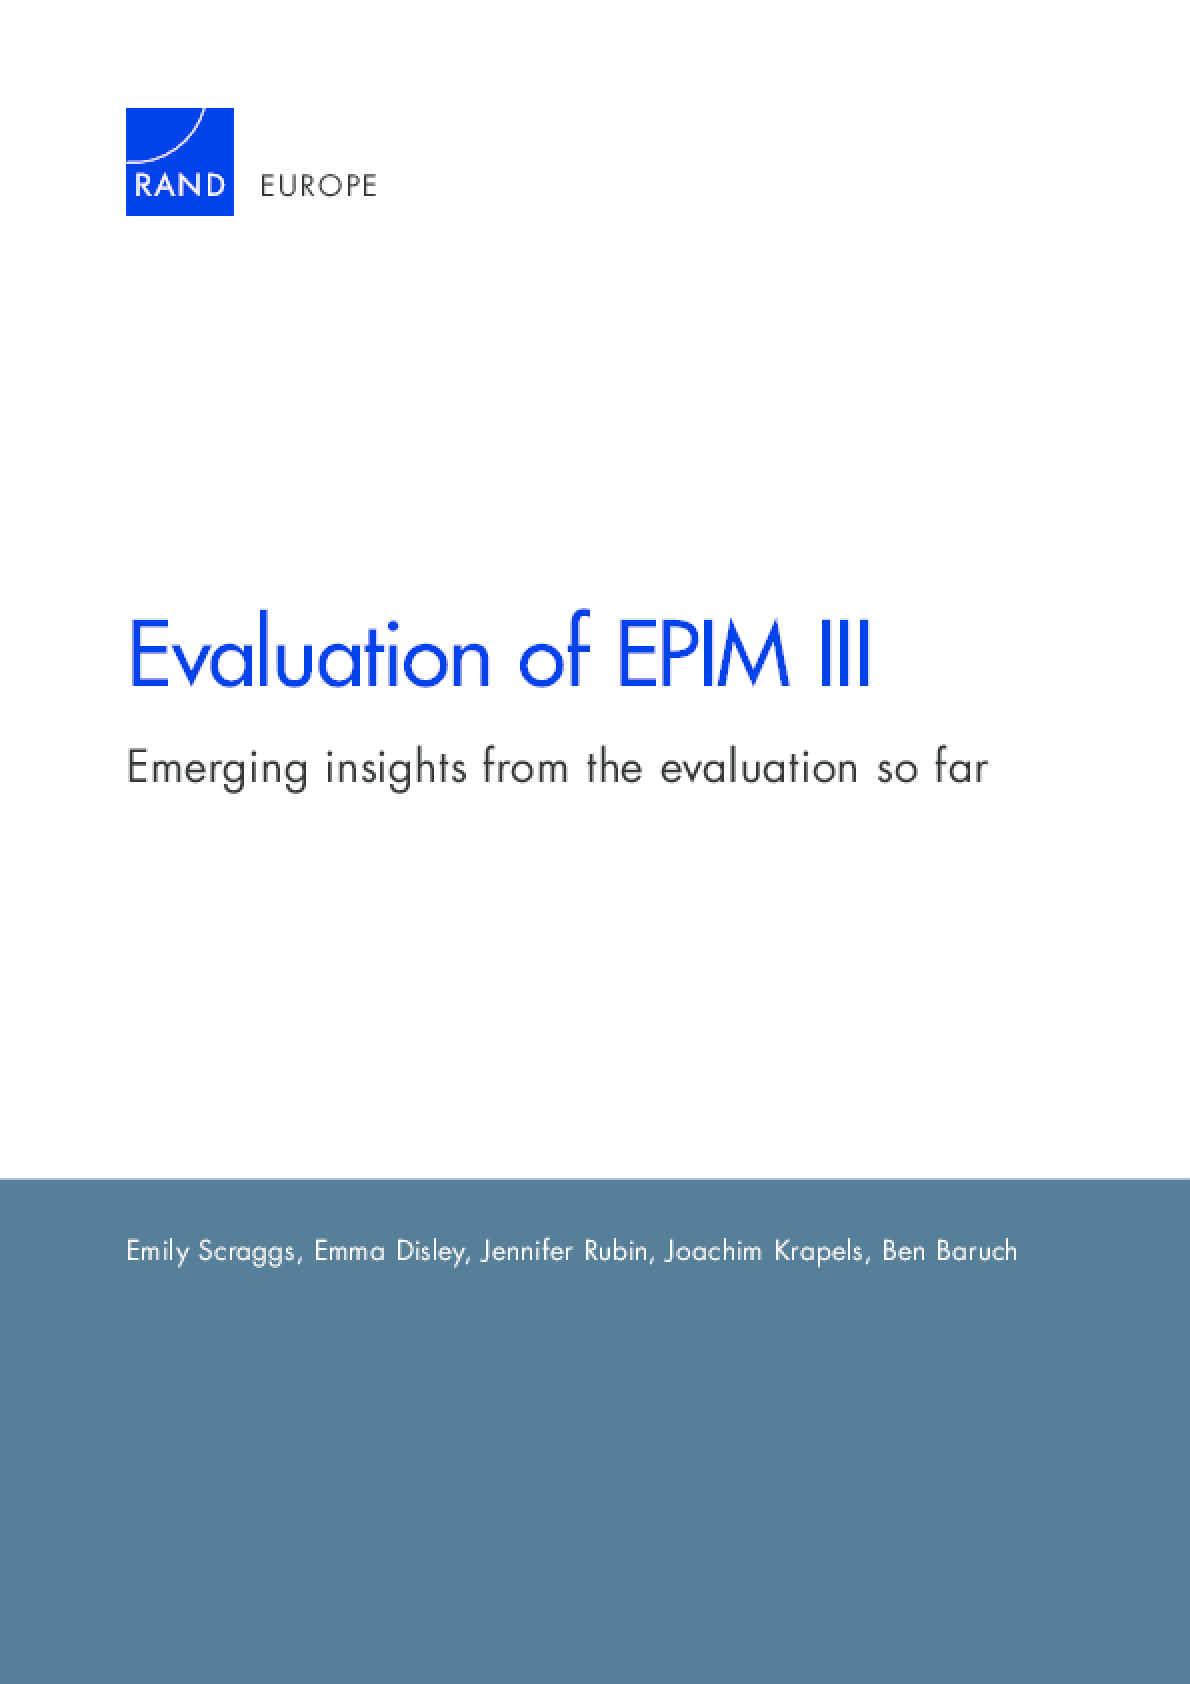 Evaluation of EPIM III: Emerging Insights From the Evaluation So Far